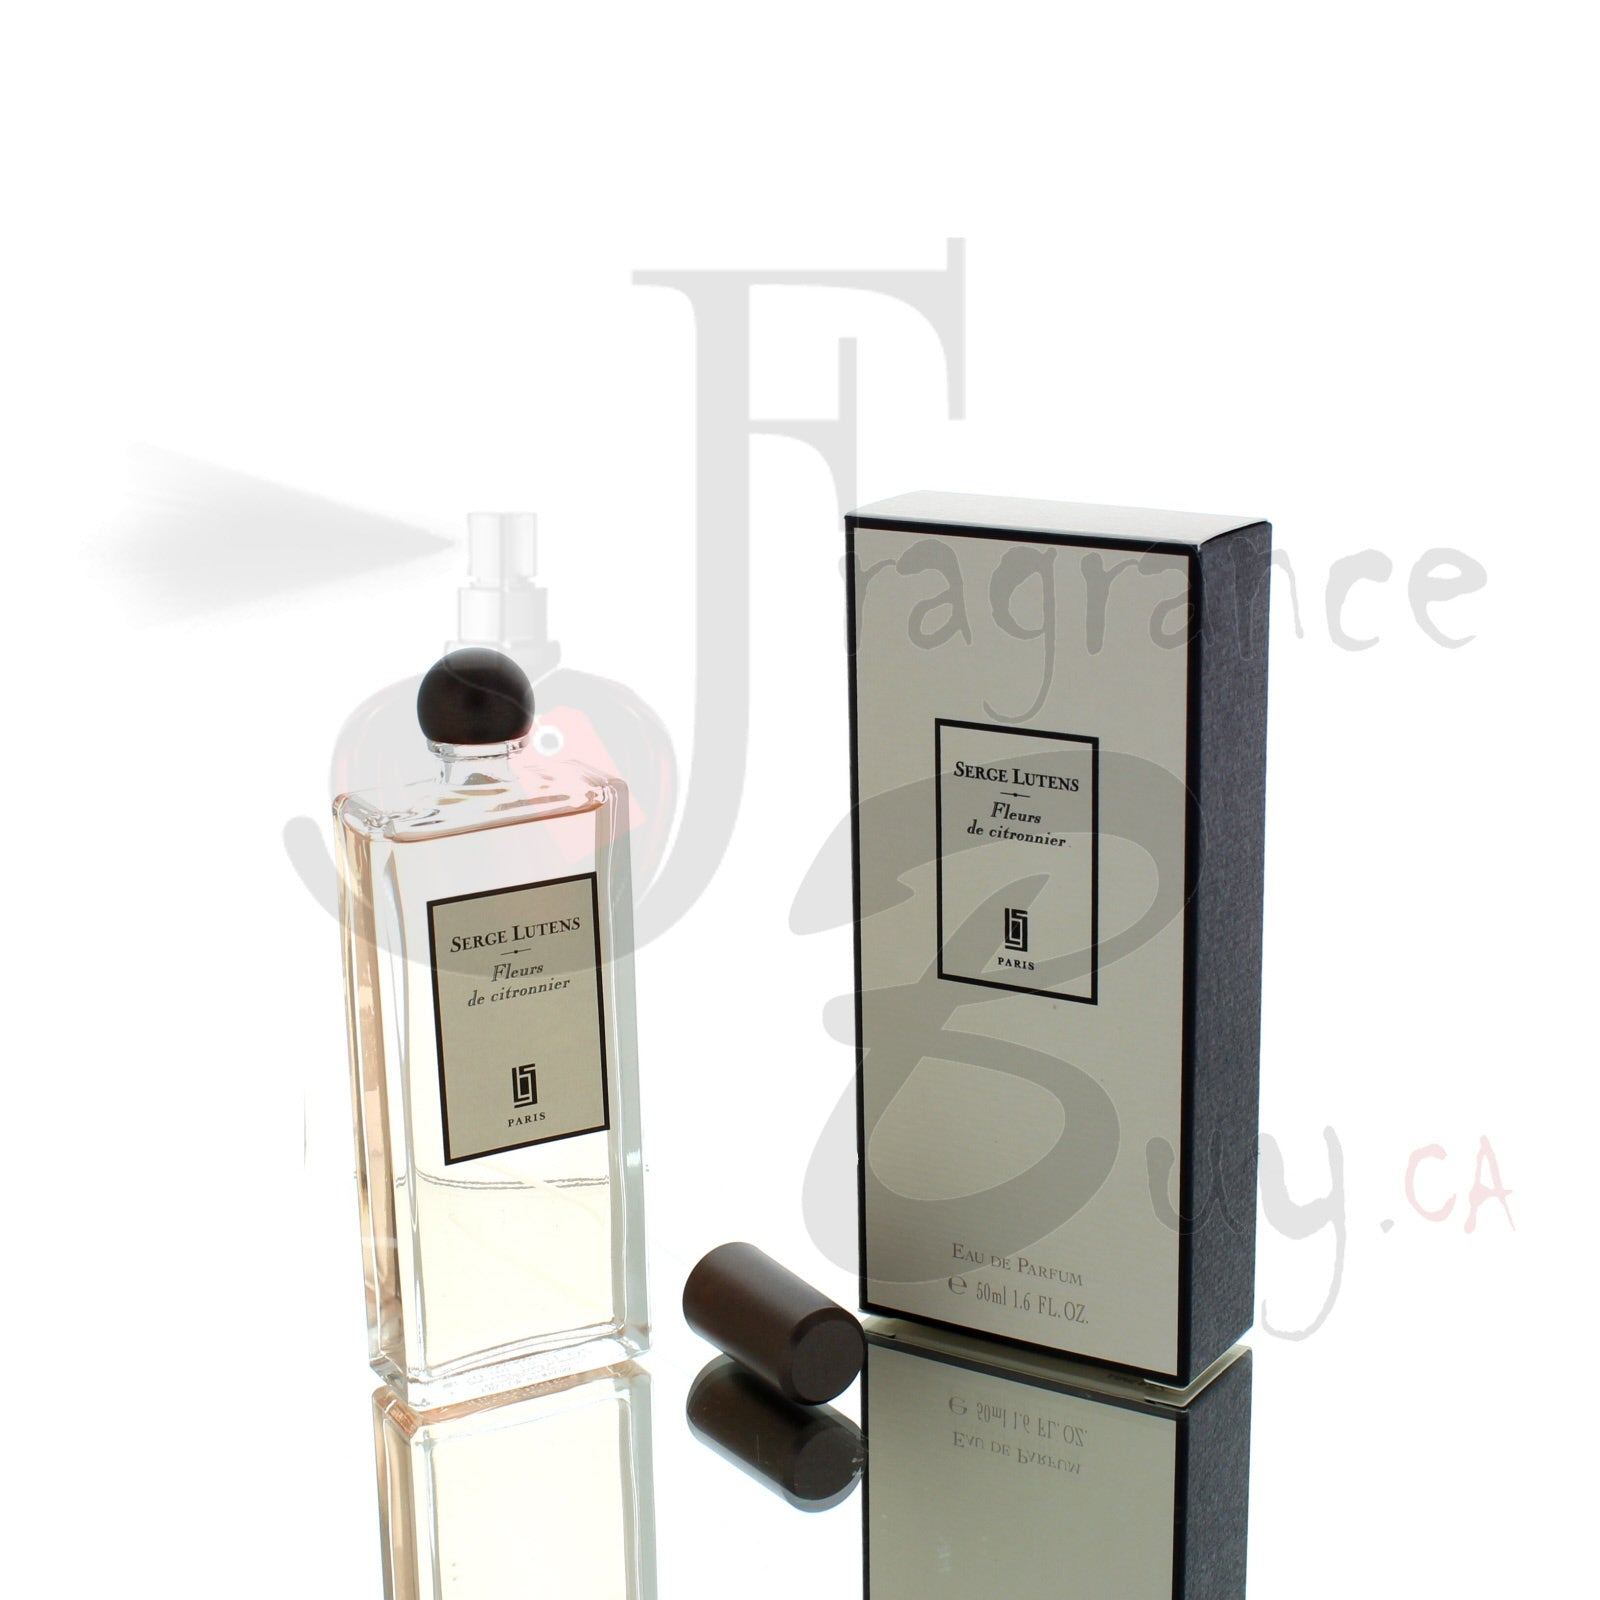 Serge Lutens Fleurs de Citronnier For Man/Woman